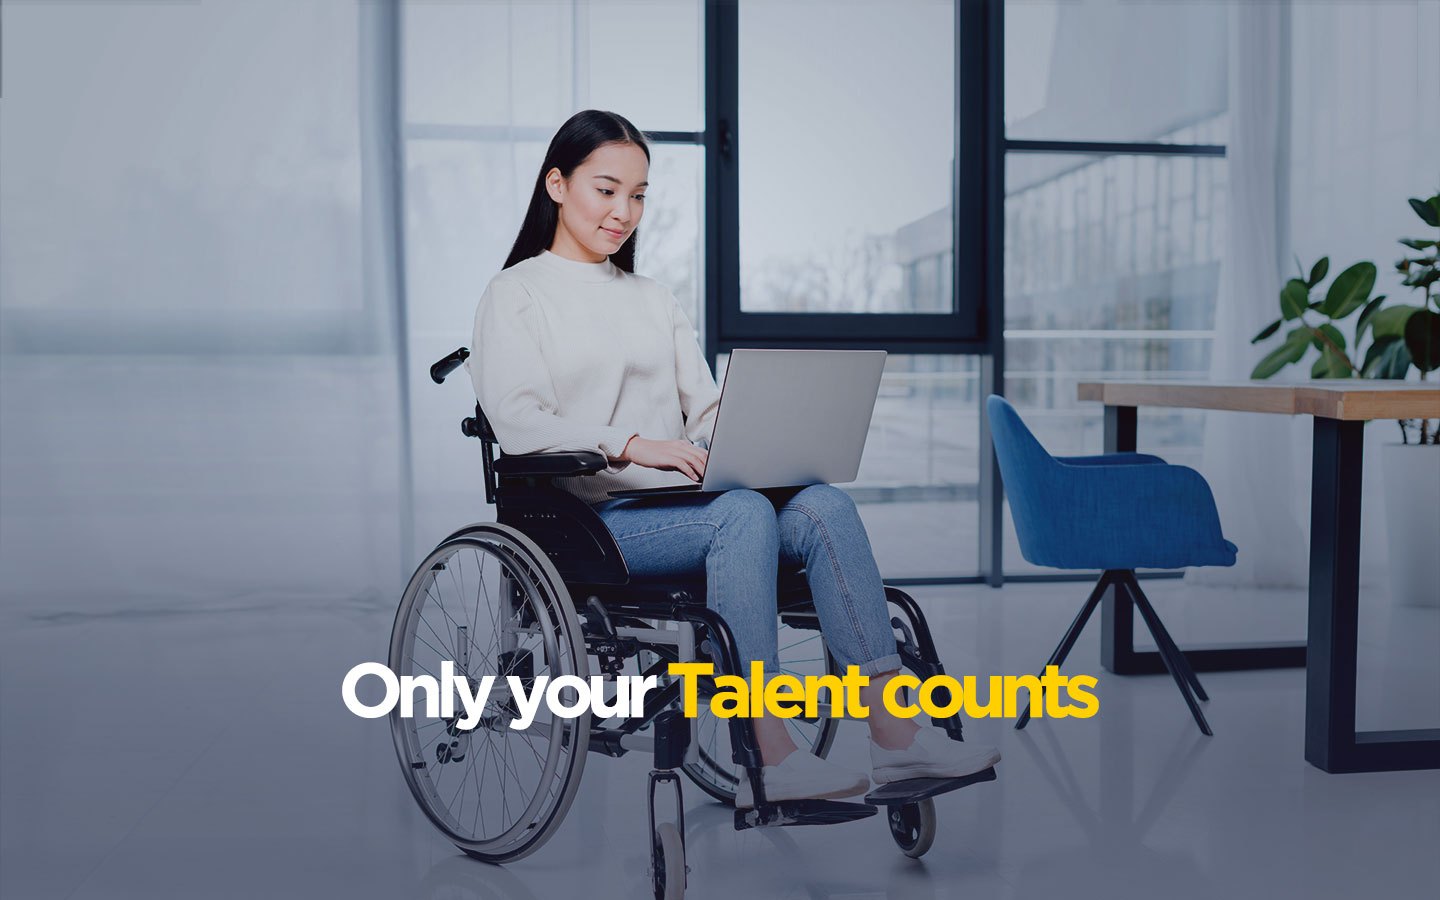 only talent counts